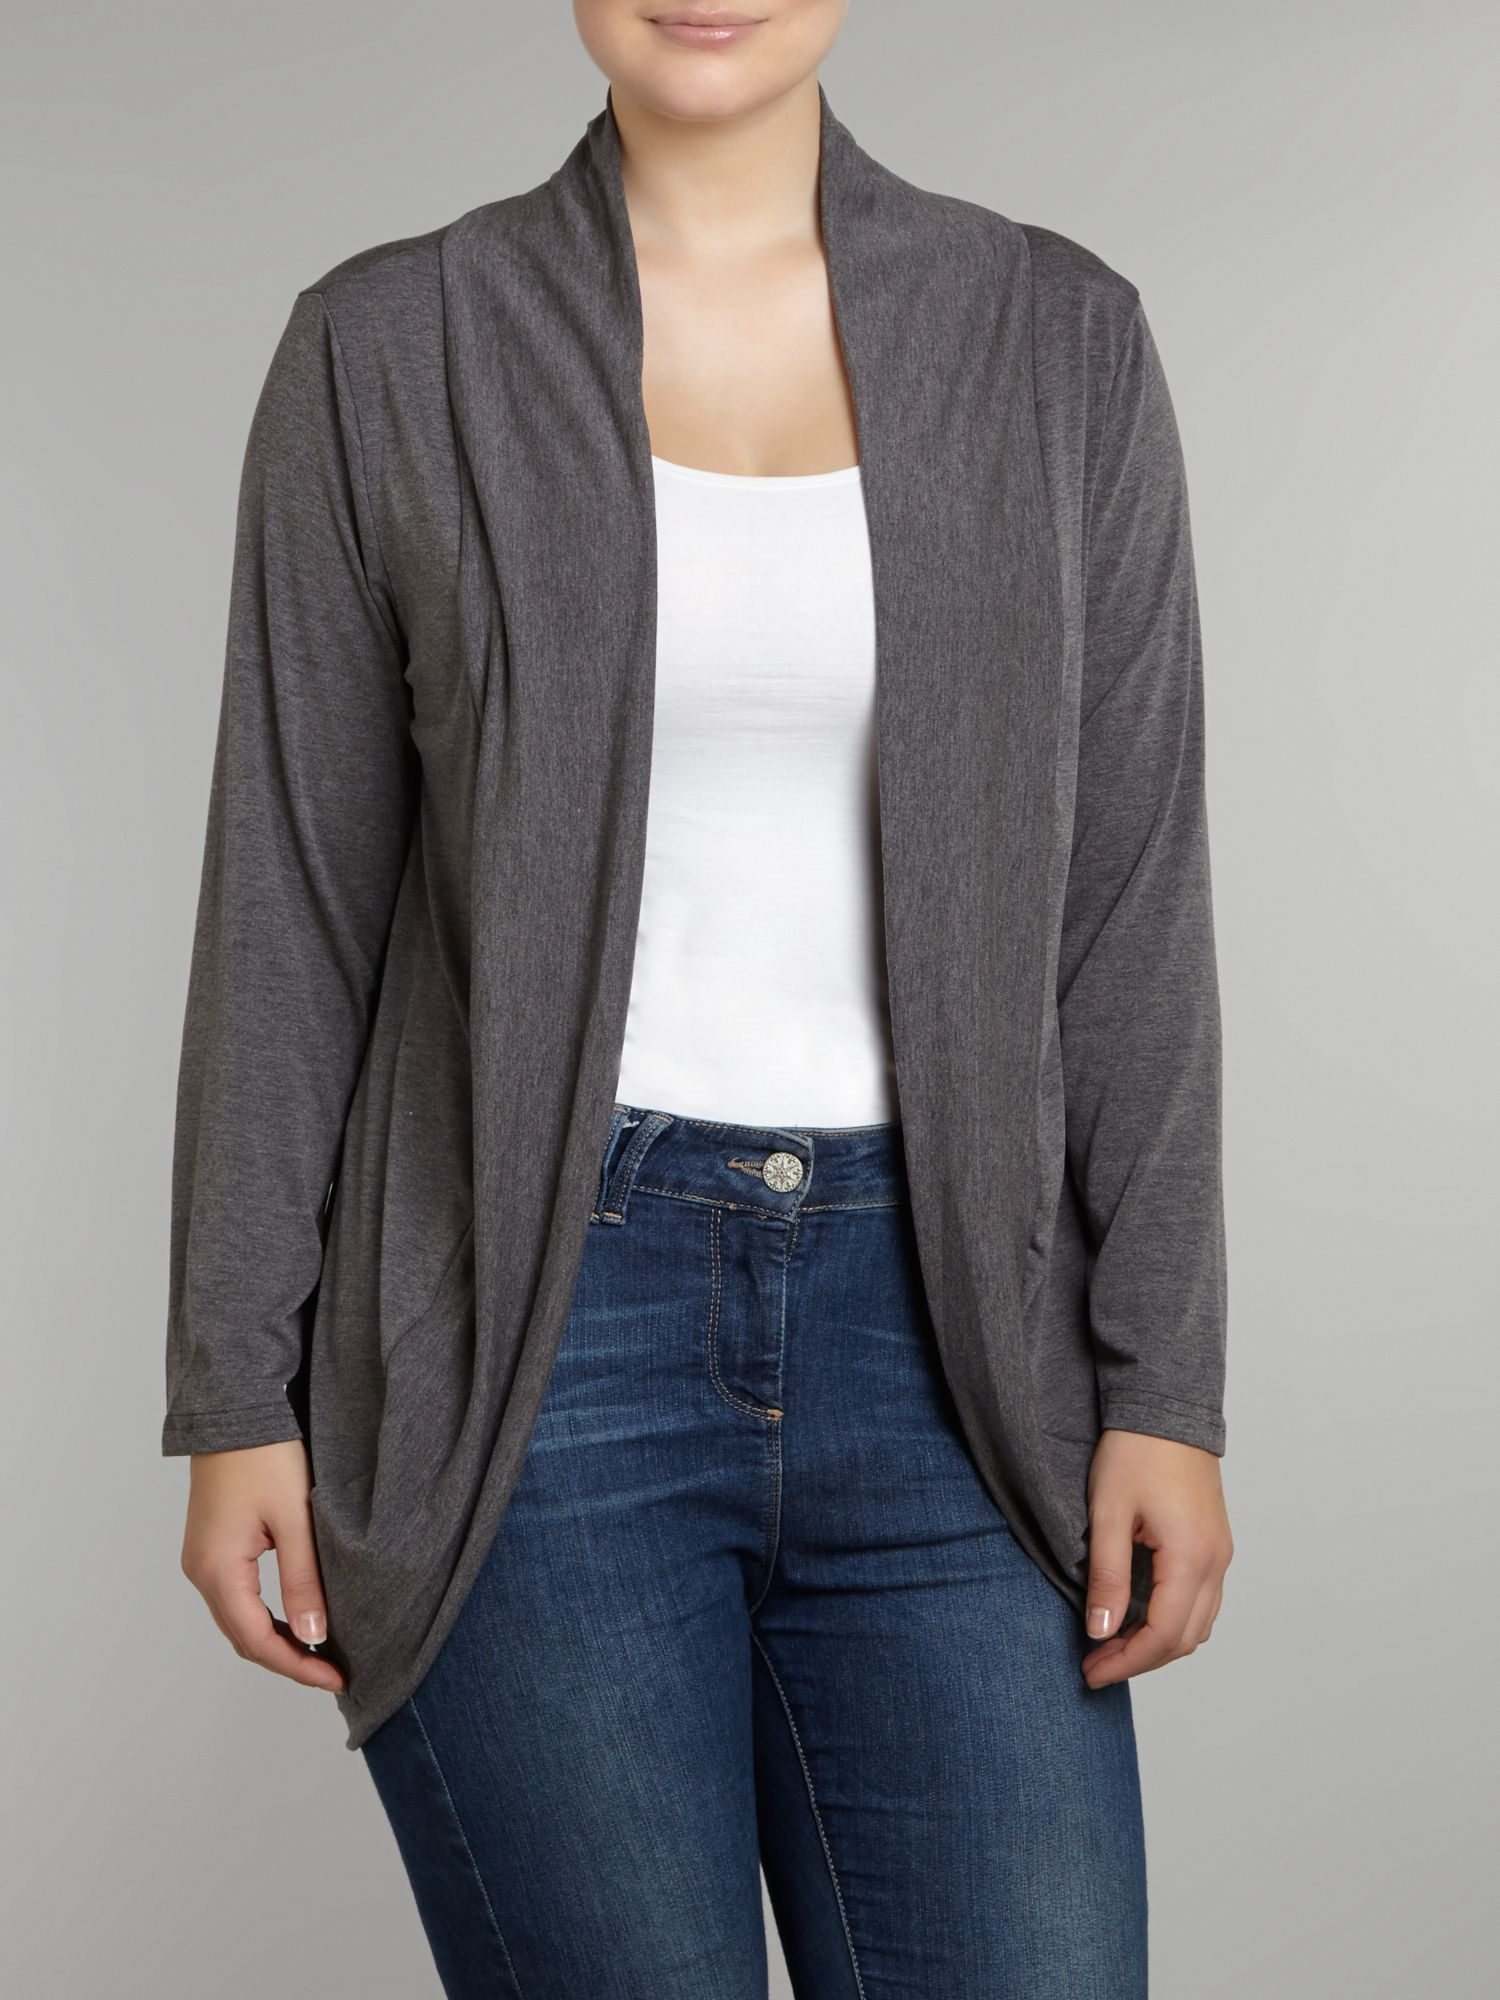 Dip hem cover up cardigan